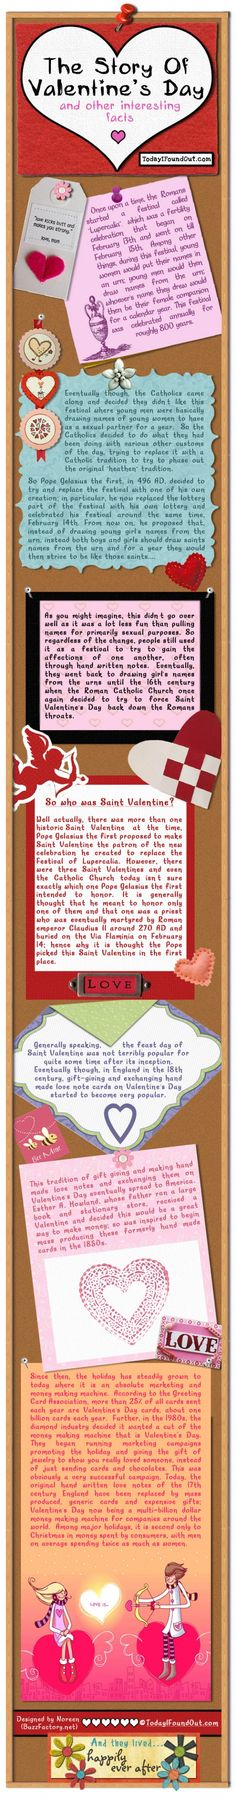 The History of Valentine's Day | The Story of Valentine